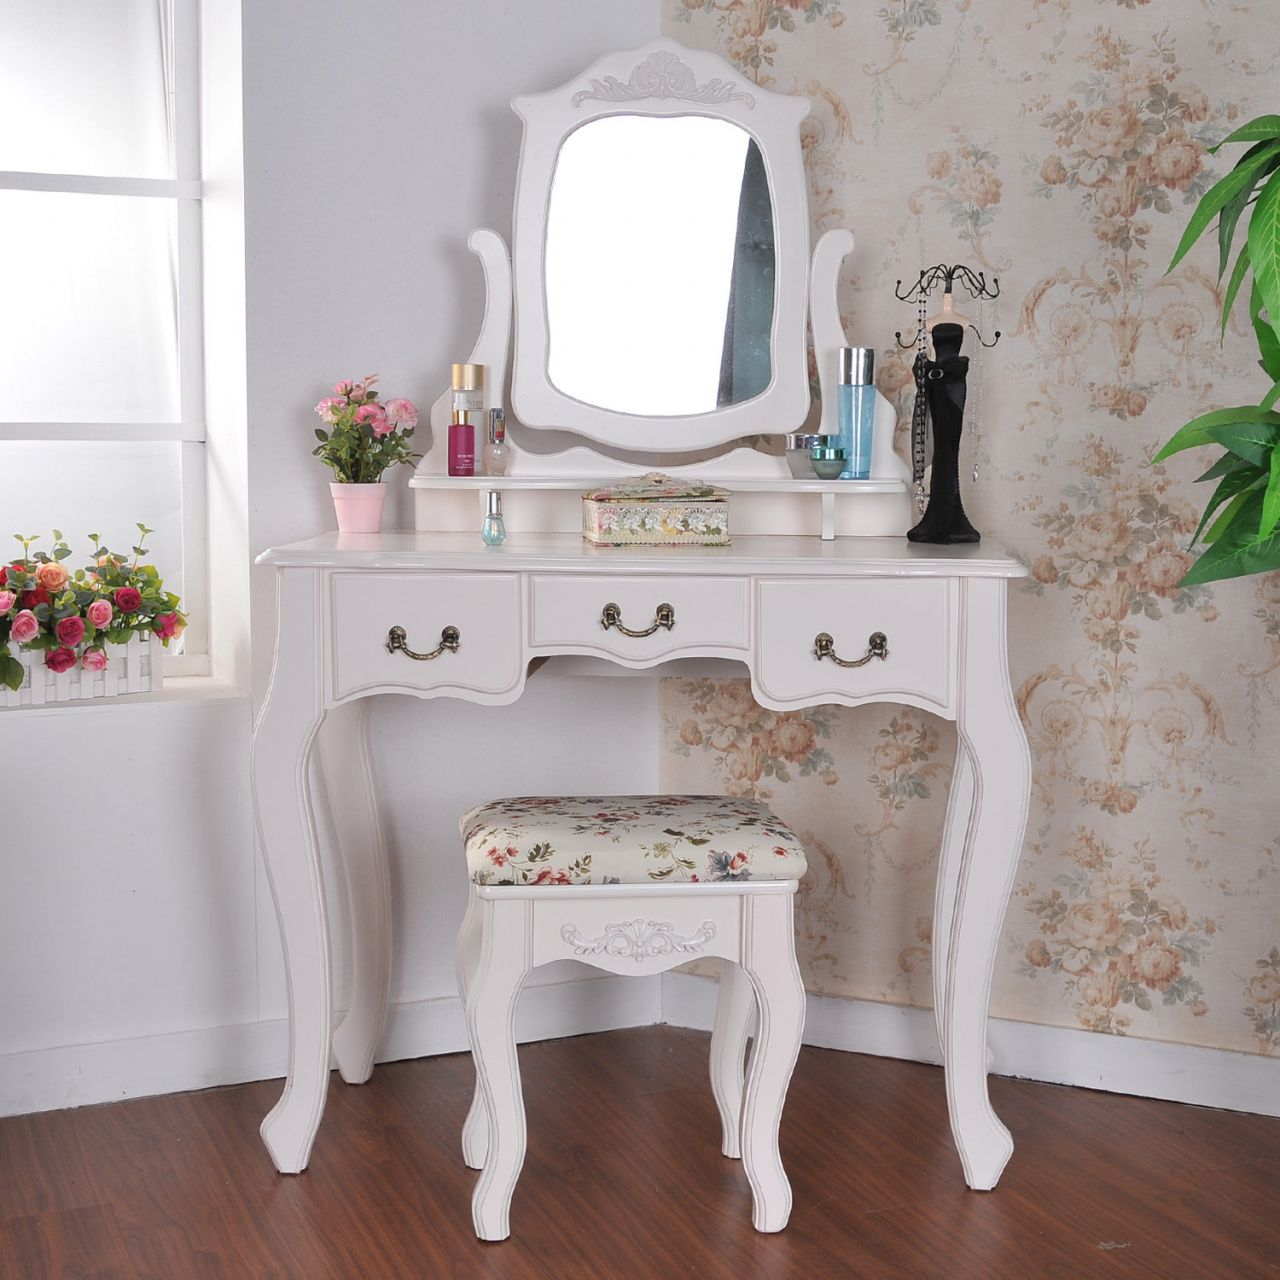 Pin by Annora on the sofa interior Bedroom makeup vanity